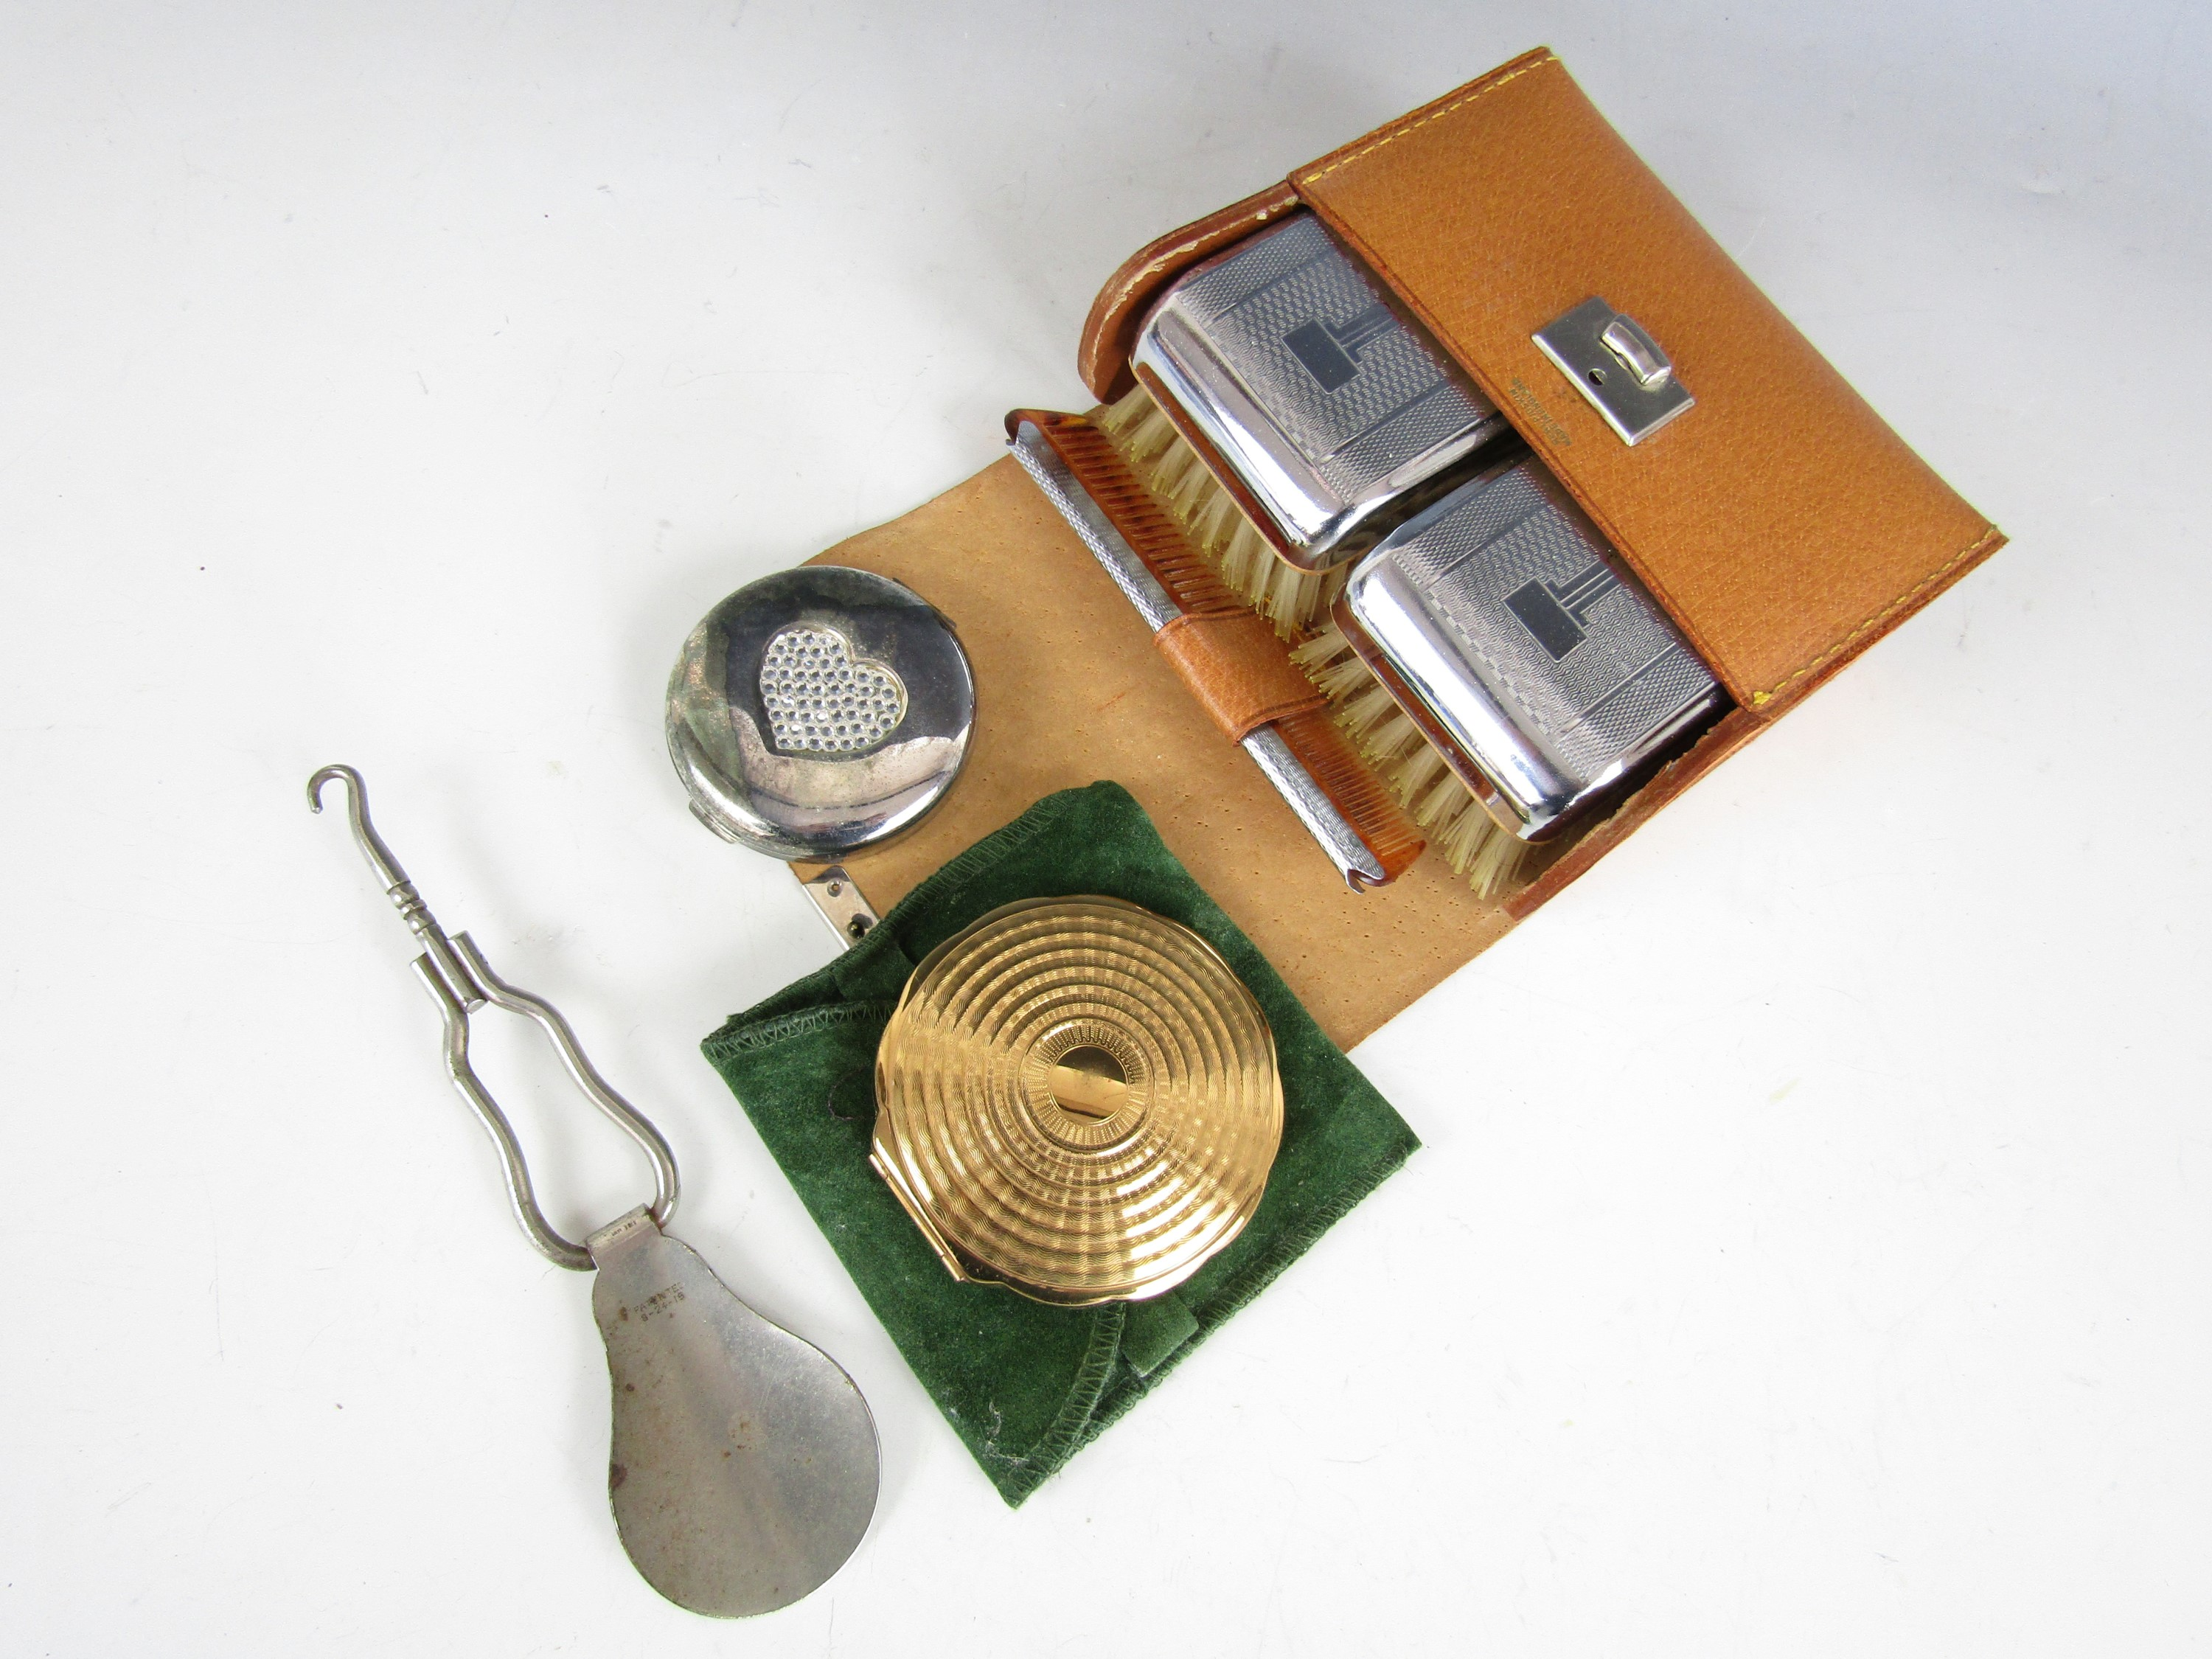 Lot 50 - A gentleman's vintage travel brush set, together with two pressed powder compacts and a folding shoe